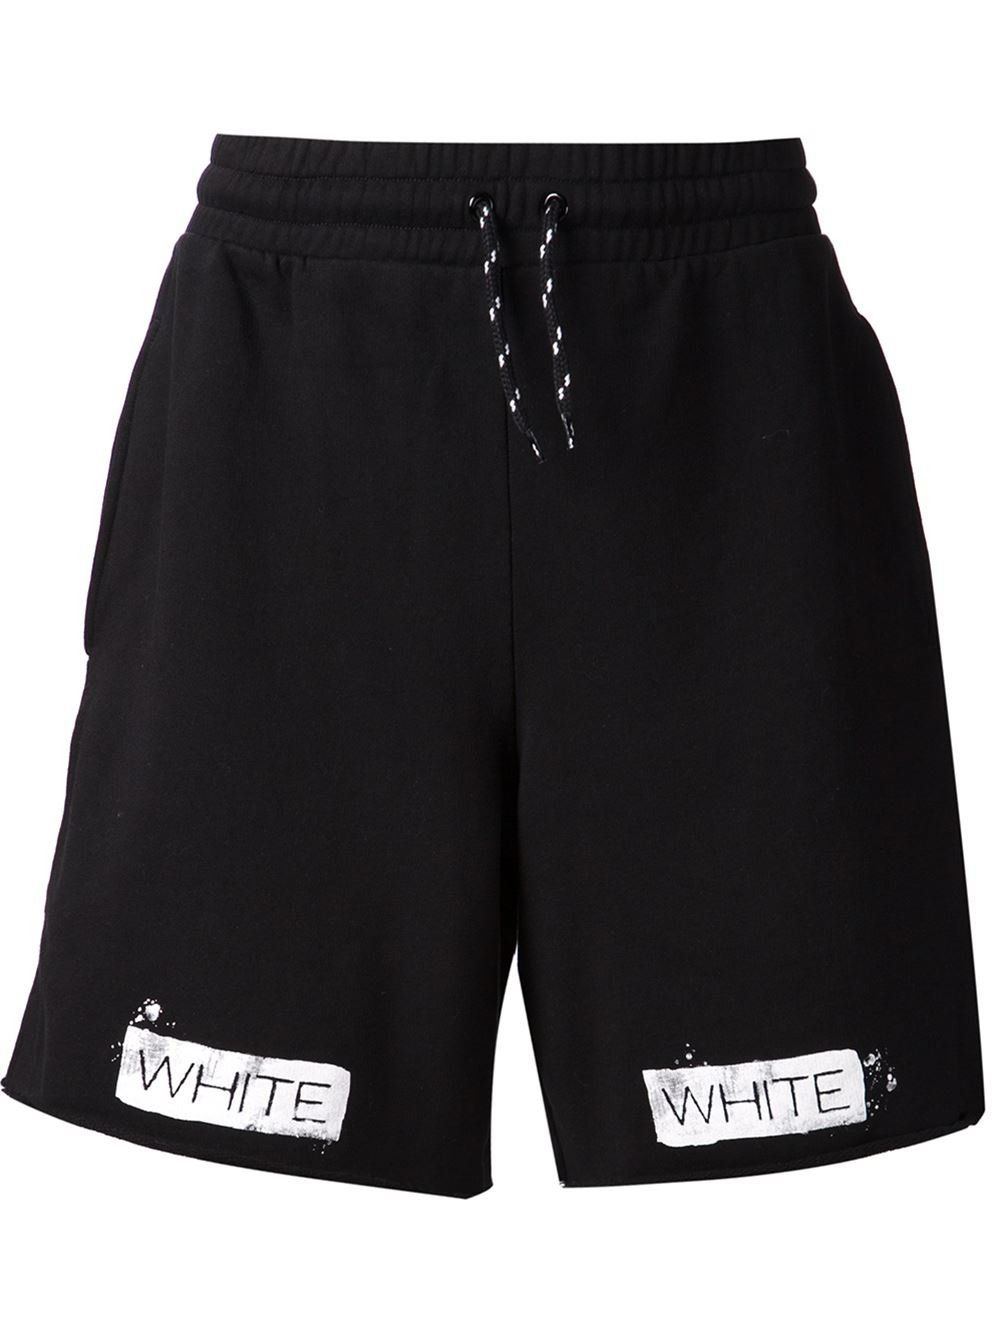 Off-white c/o virgil abloh Striped Cotton Shorts in Black for Men ...